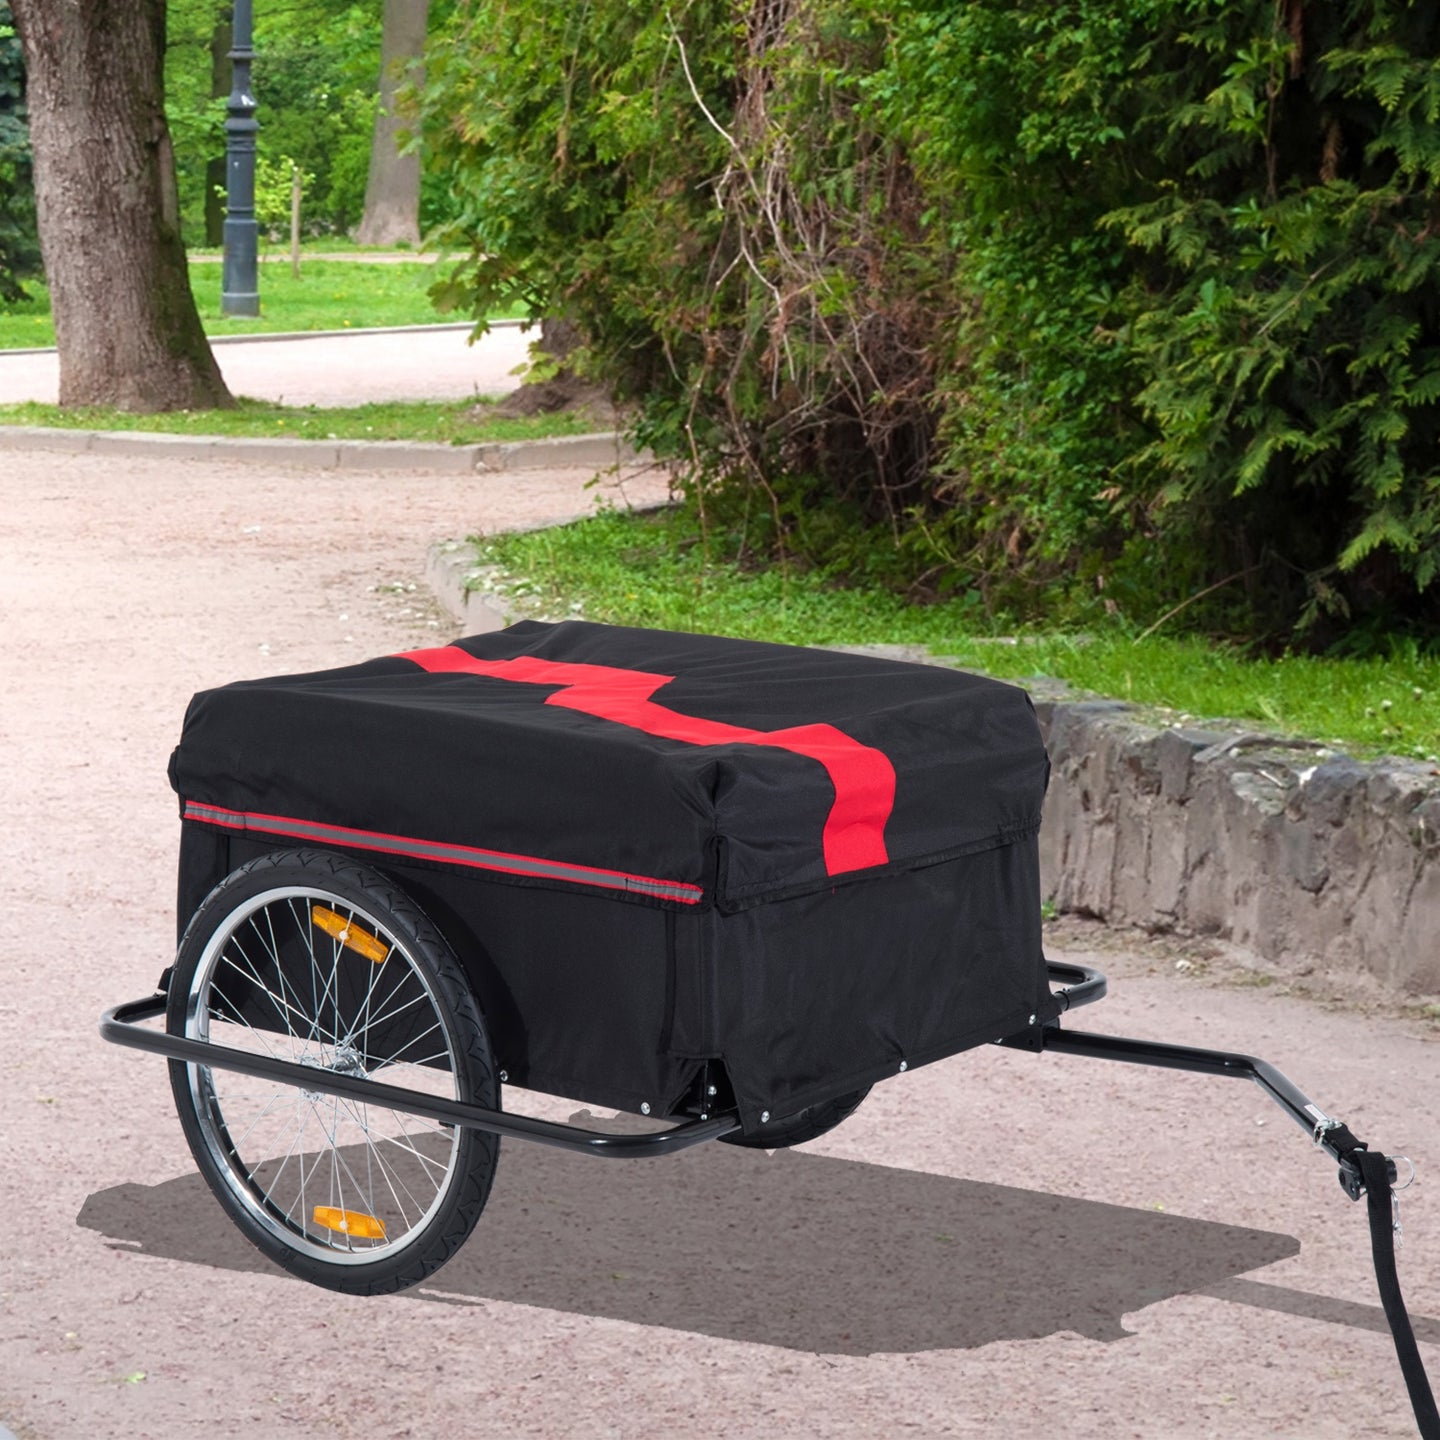 HOMCOM Bike Cargo Trailer W/Removable Cover-Red/Black